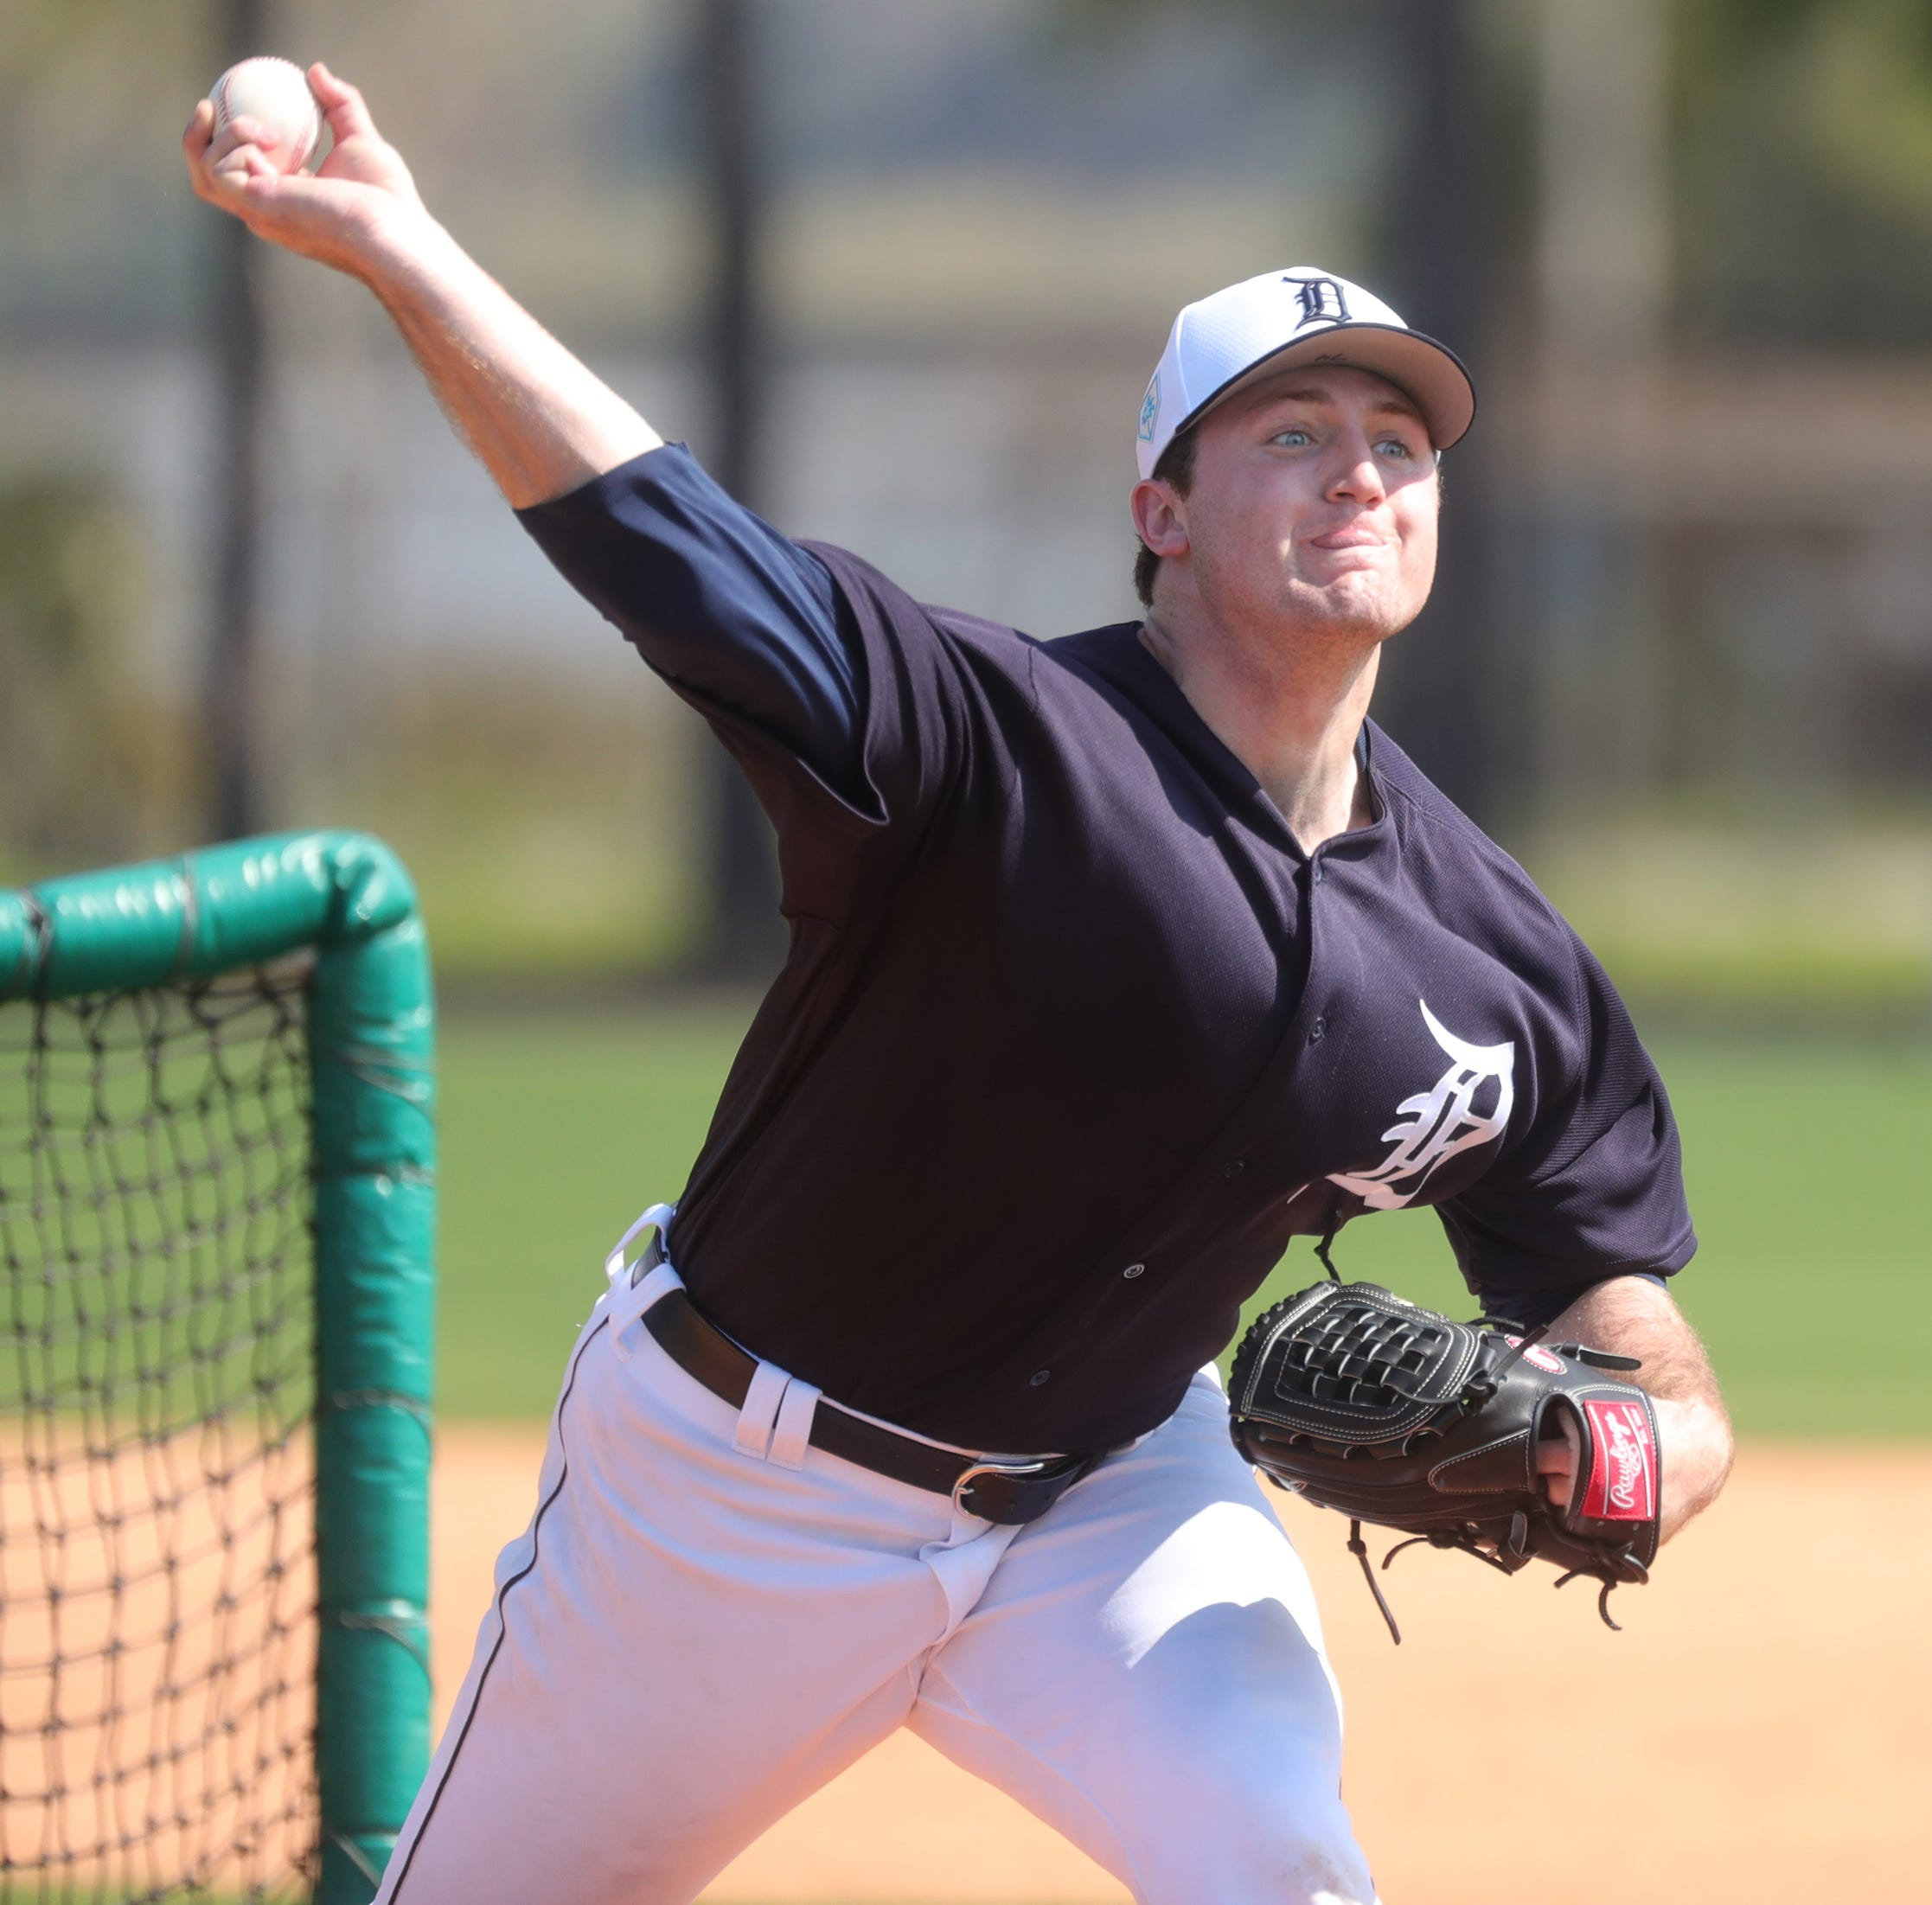 Tigers pitcher Casey Mize pitches during batting practice during spring training on Tuesday, Feb. 19, 2019, at Joker Marchant Stadium in Lakeland, Florida.